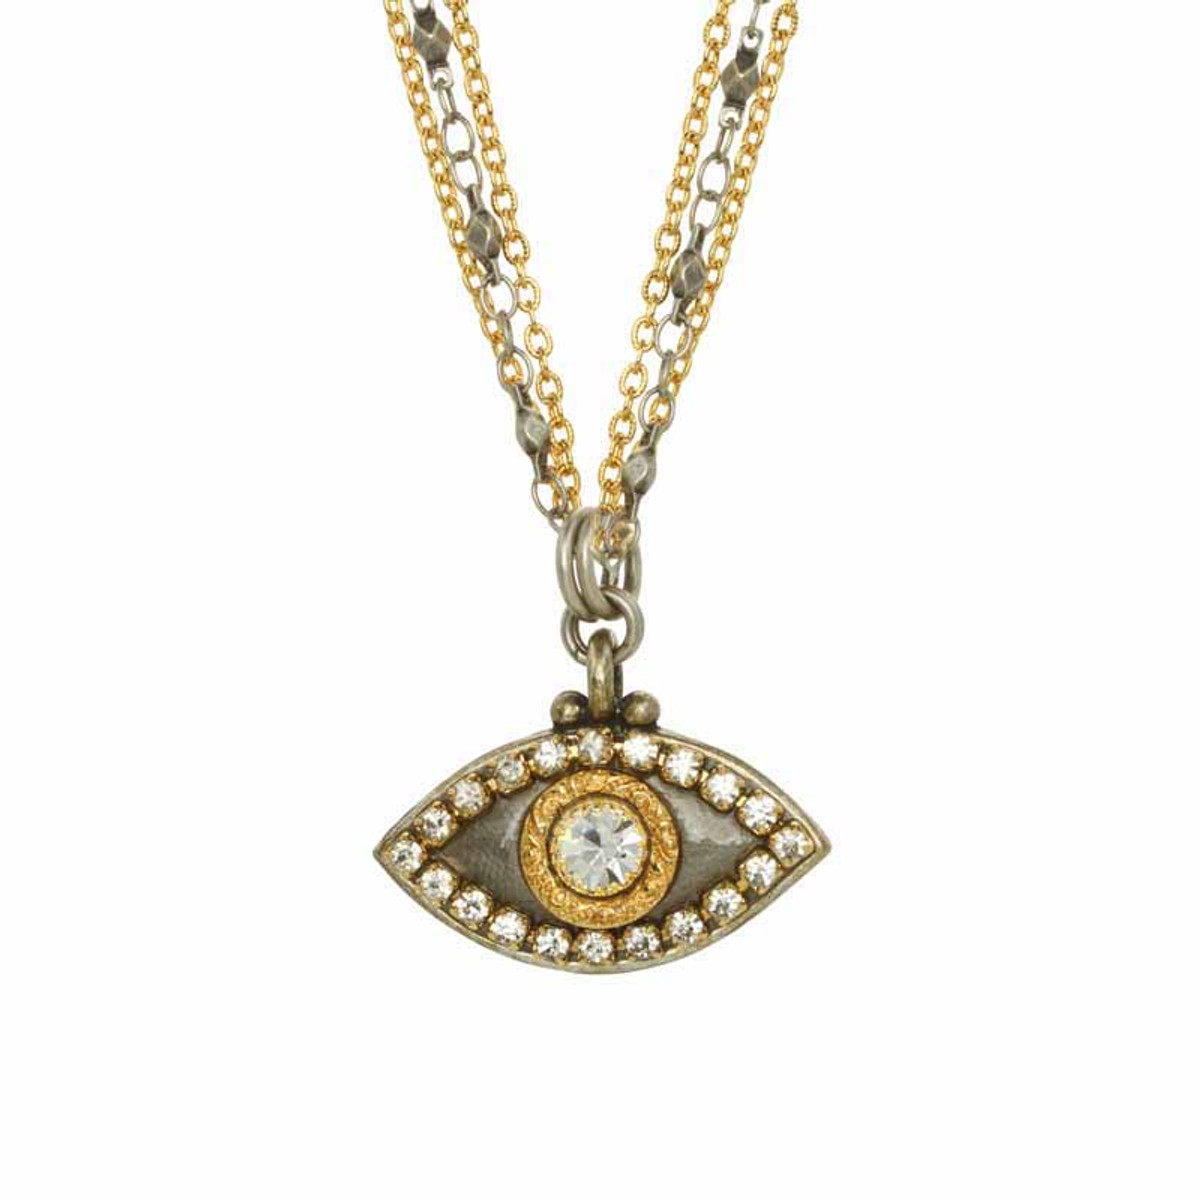 Evil Eye Necklace - Gray, Medium Eye With Crystal by Michal Golan